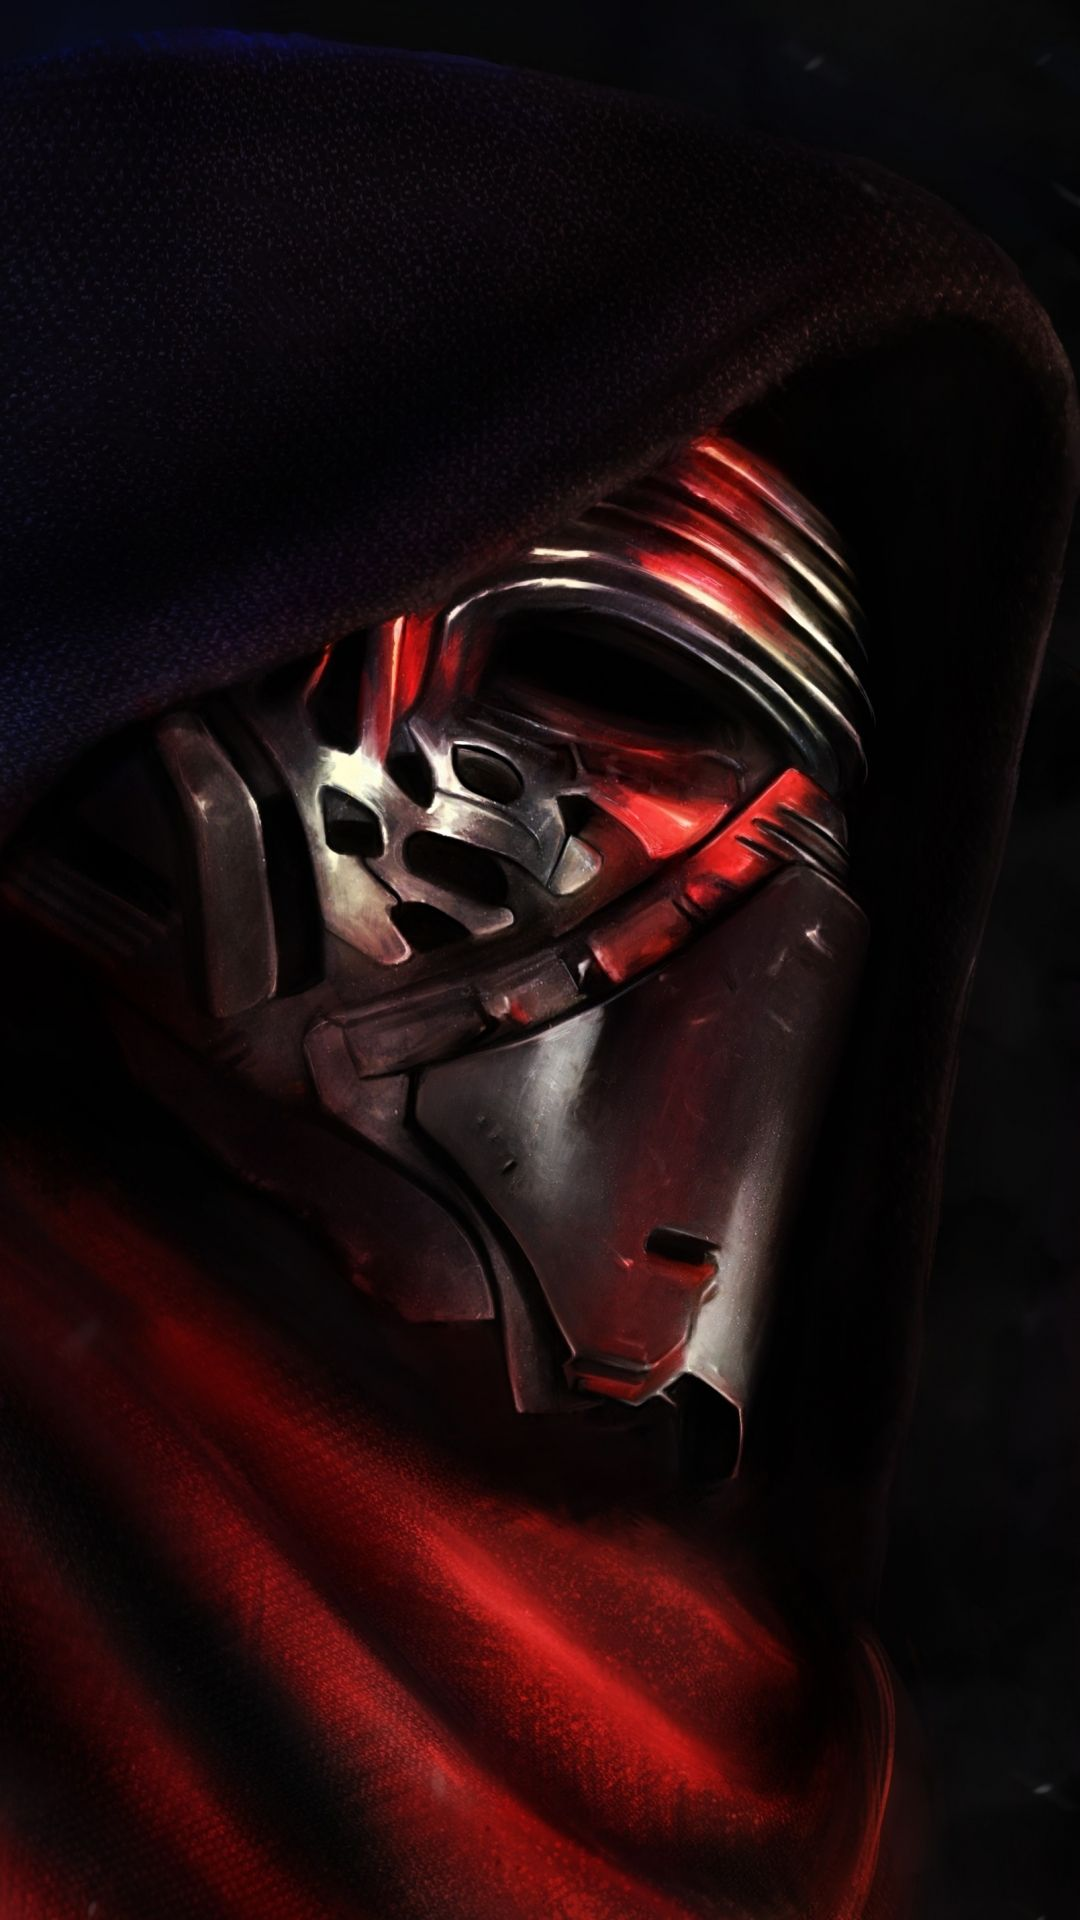 star wars force awakens kylo ren Wallpapers of the week